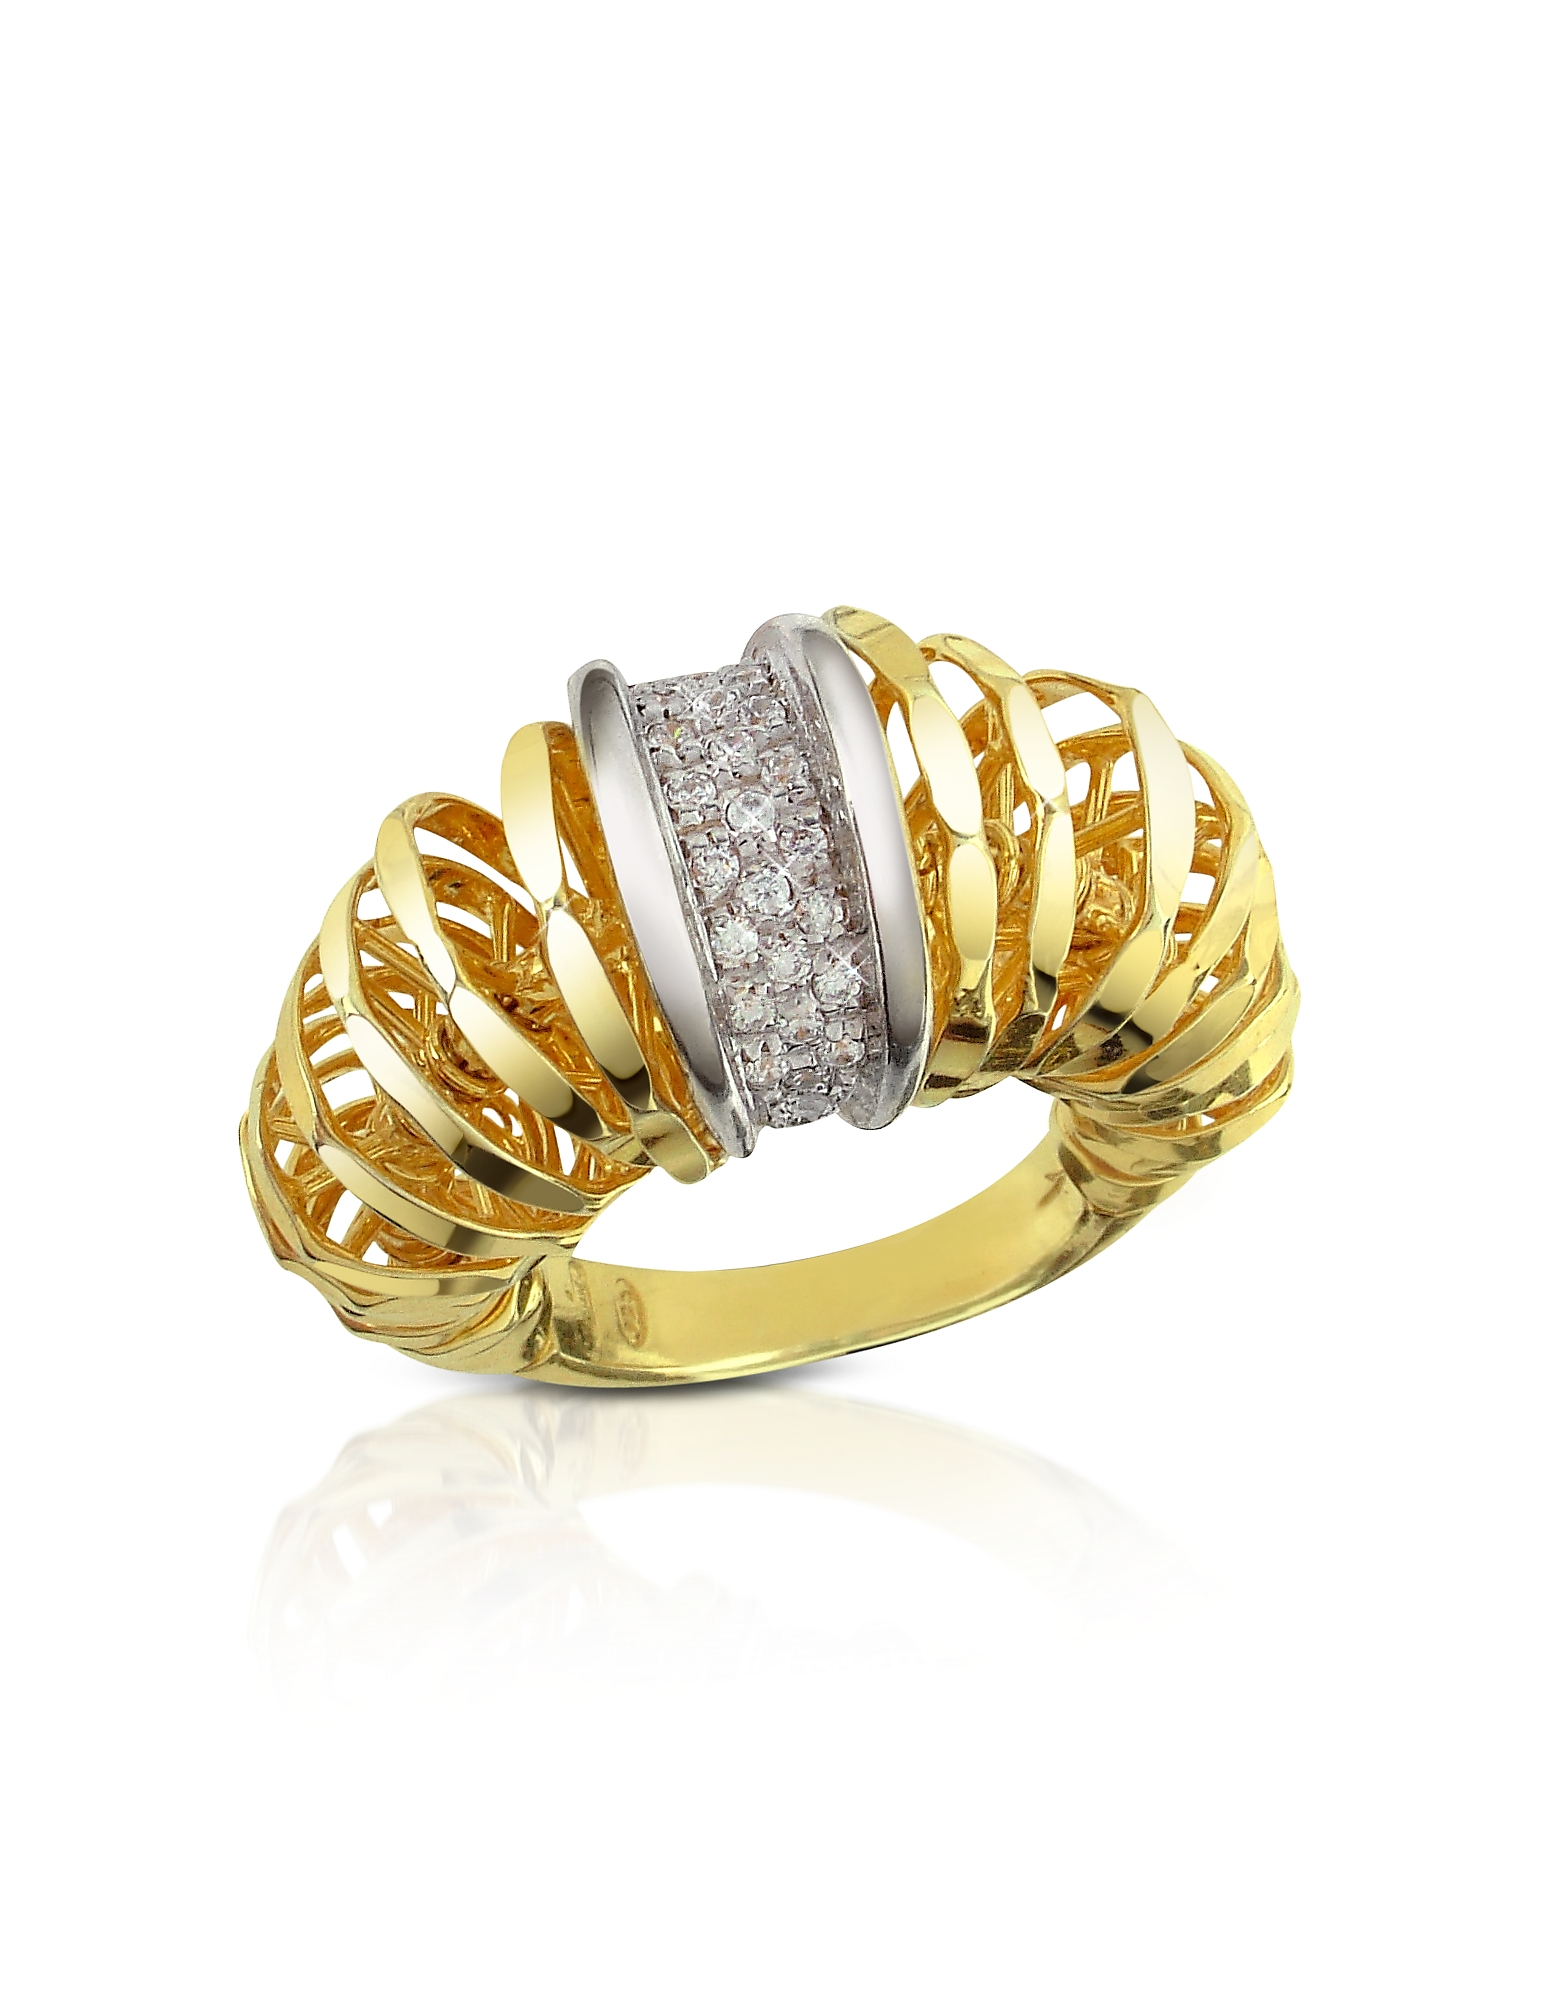 Orlando Orlandini Rings, Galaxy - Diamond 18K Gold Ring